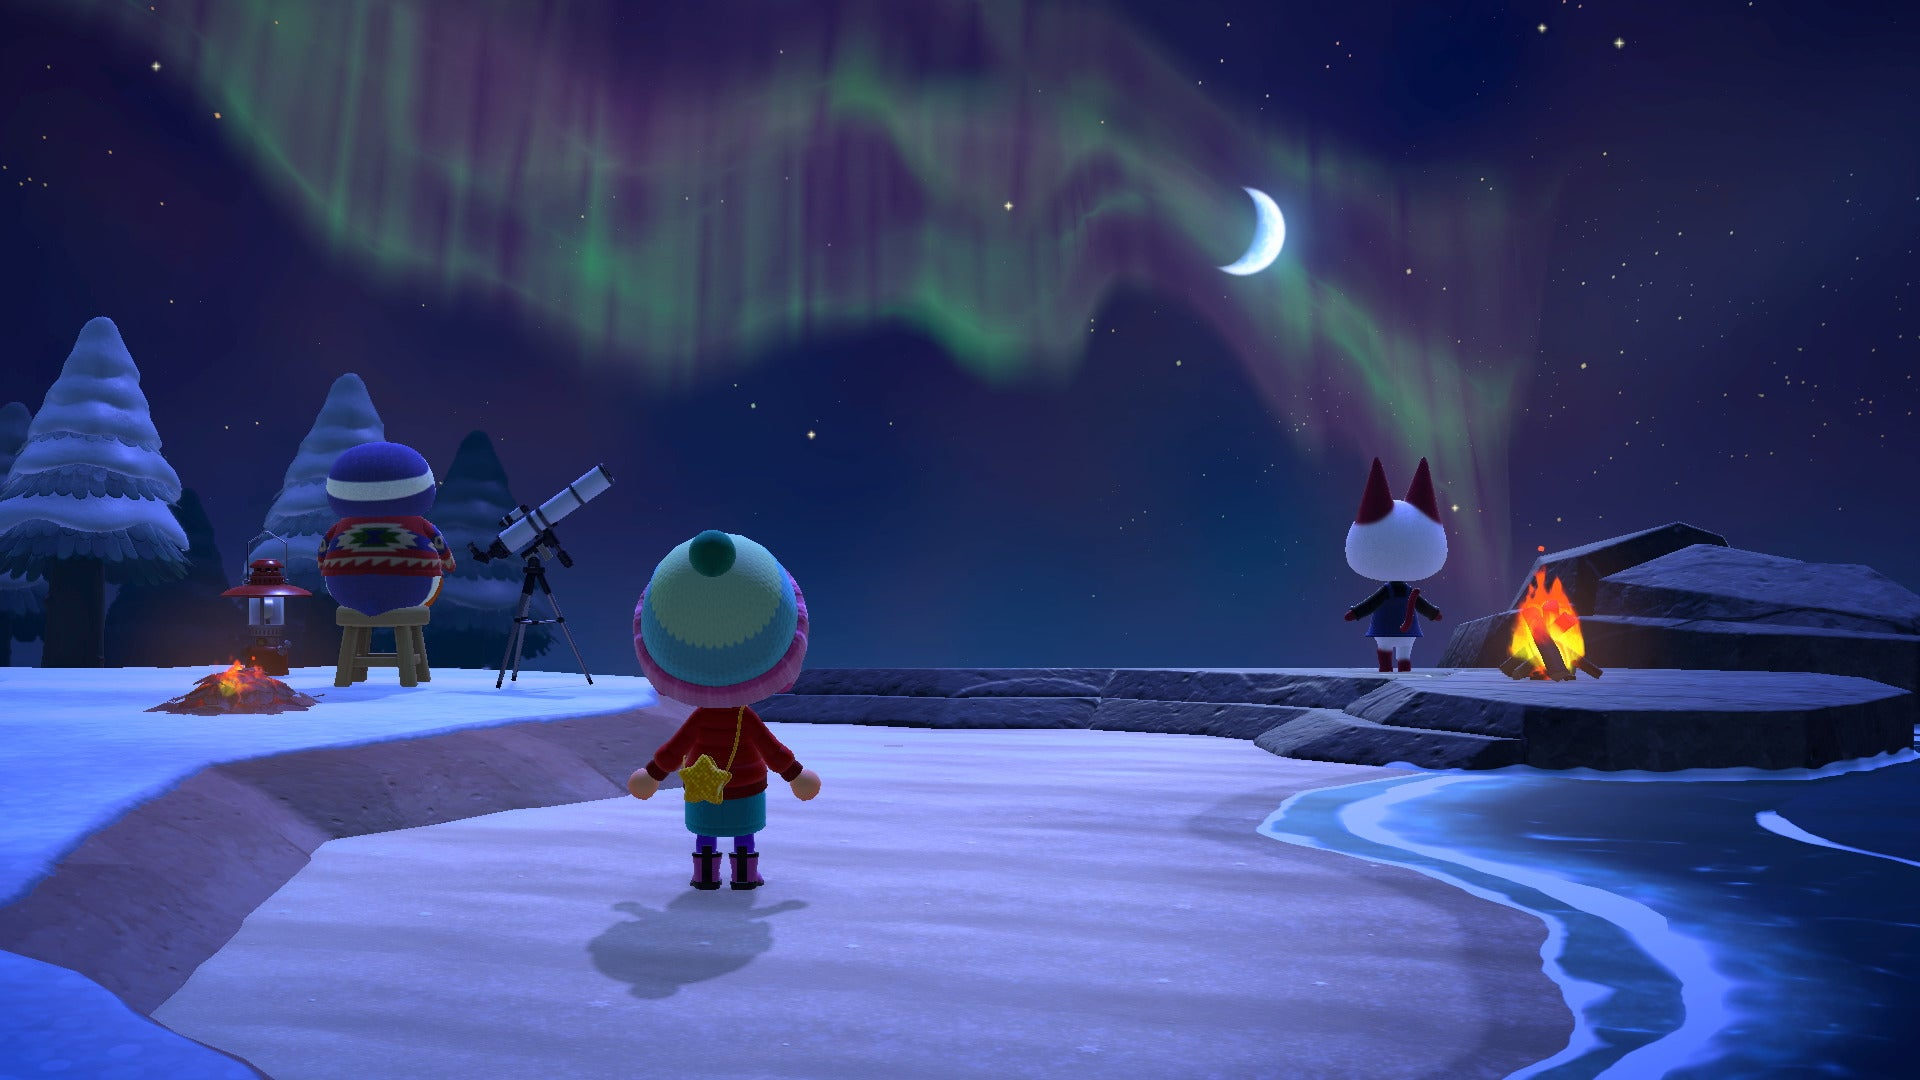 Animal Crossing: New Horizons' Hourly Themes, Ranked